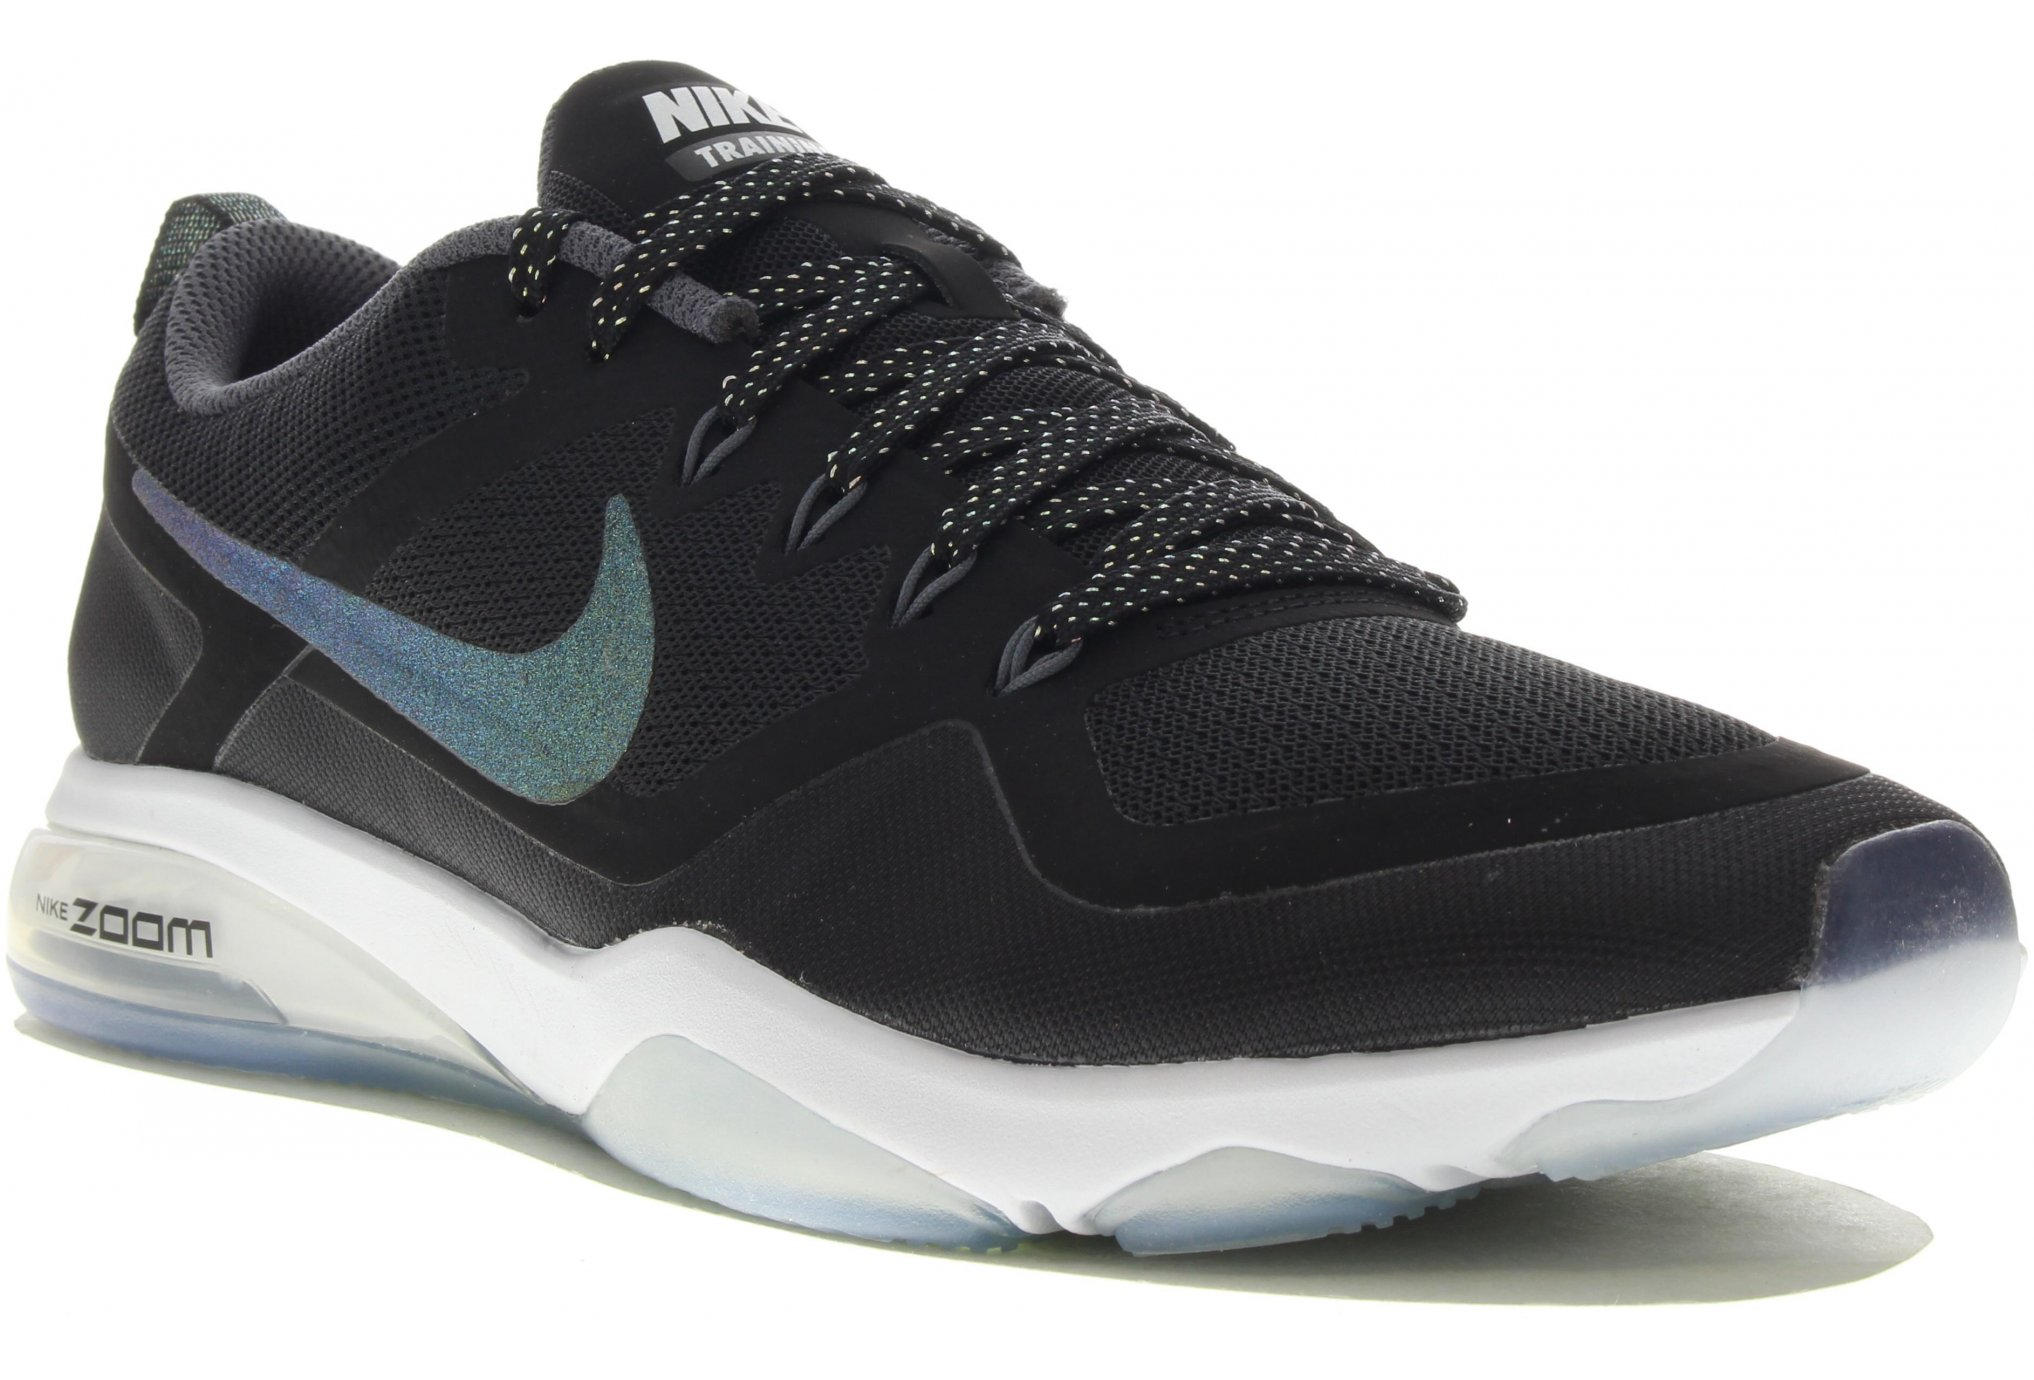 Nike Zoom Lupeenne La Nature Air Course Fitness W Metallic v8mNnO0yw